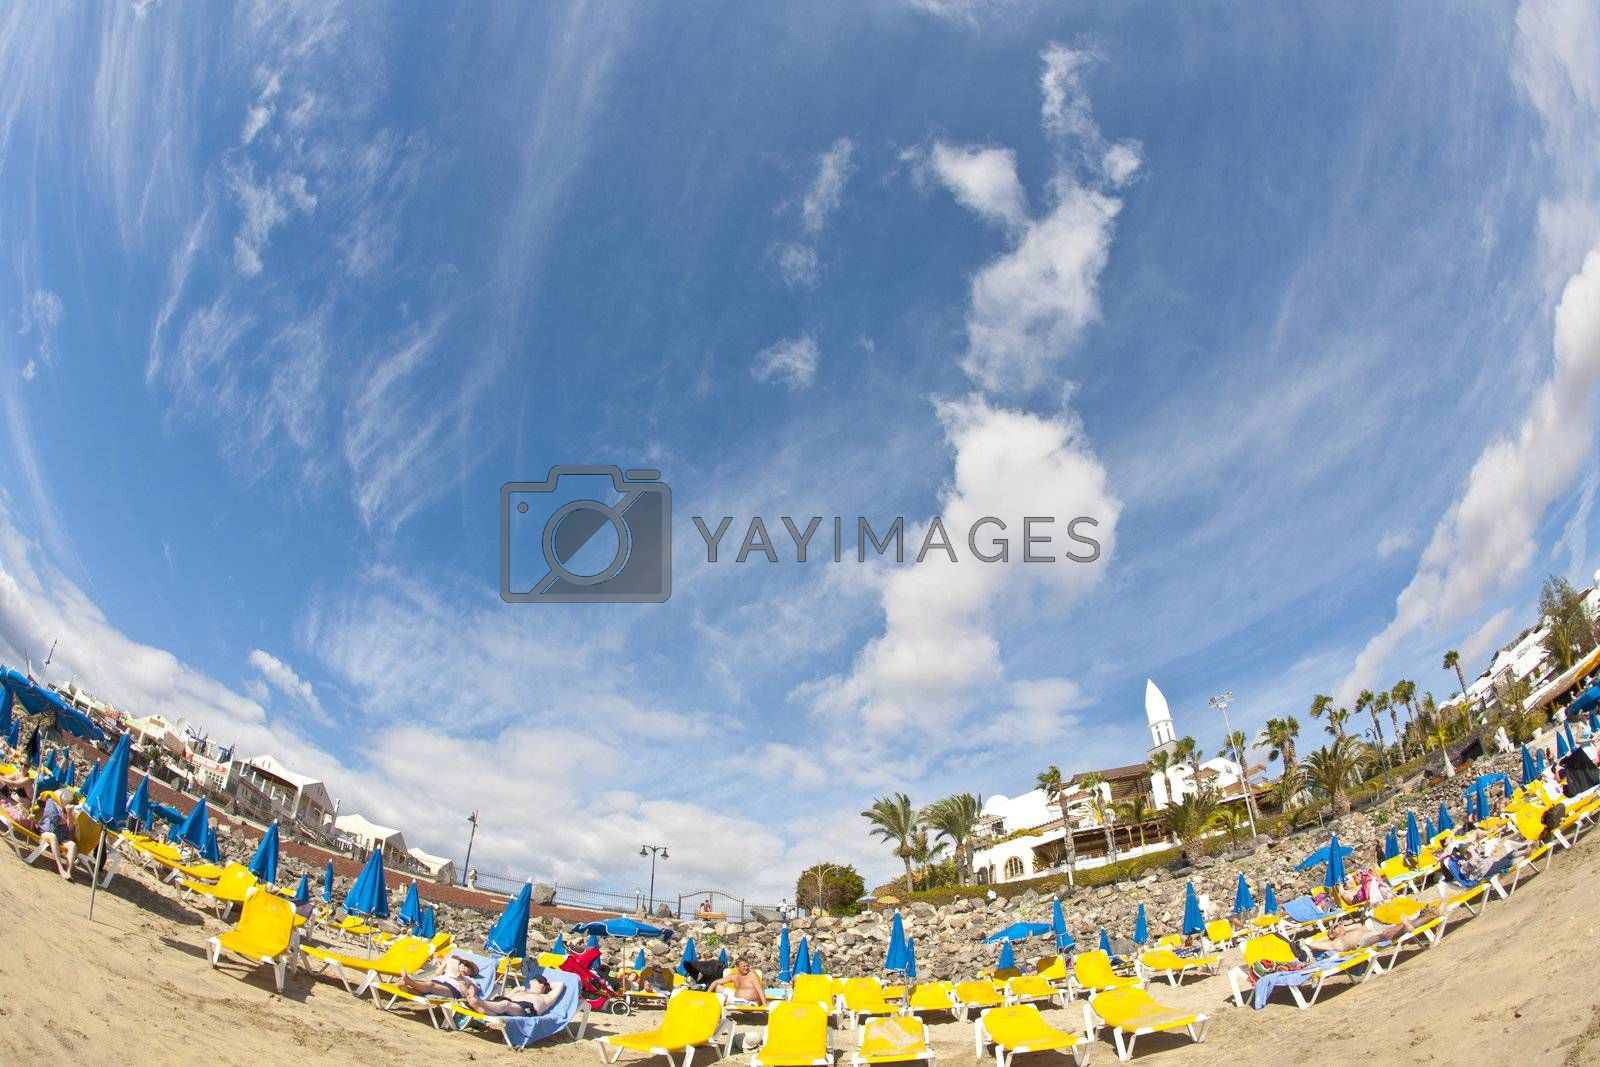 PLAYA BLANCA, SPAIN - JAN 1: people enjoy lying at the Beach Playa Dorada on January 01,2011 in Playa Blanca, Spain. The artifical beach was renovated in 2010 with additional white sand.